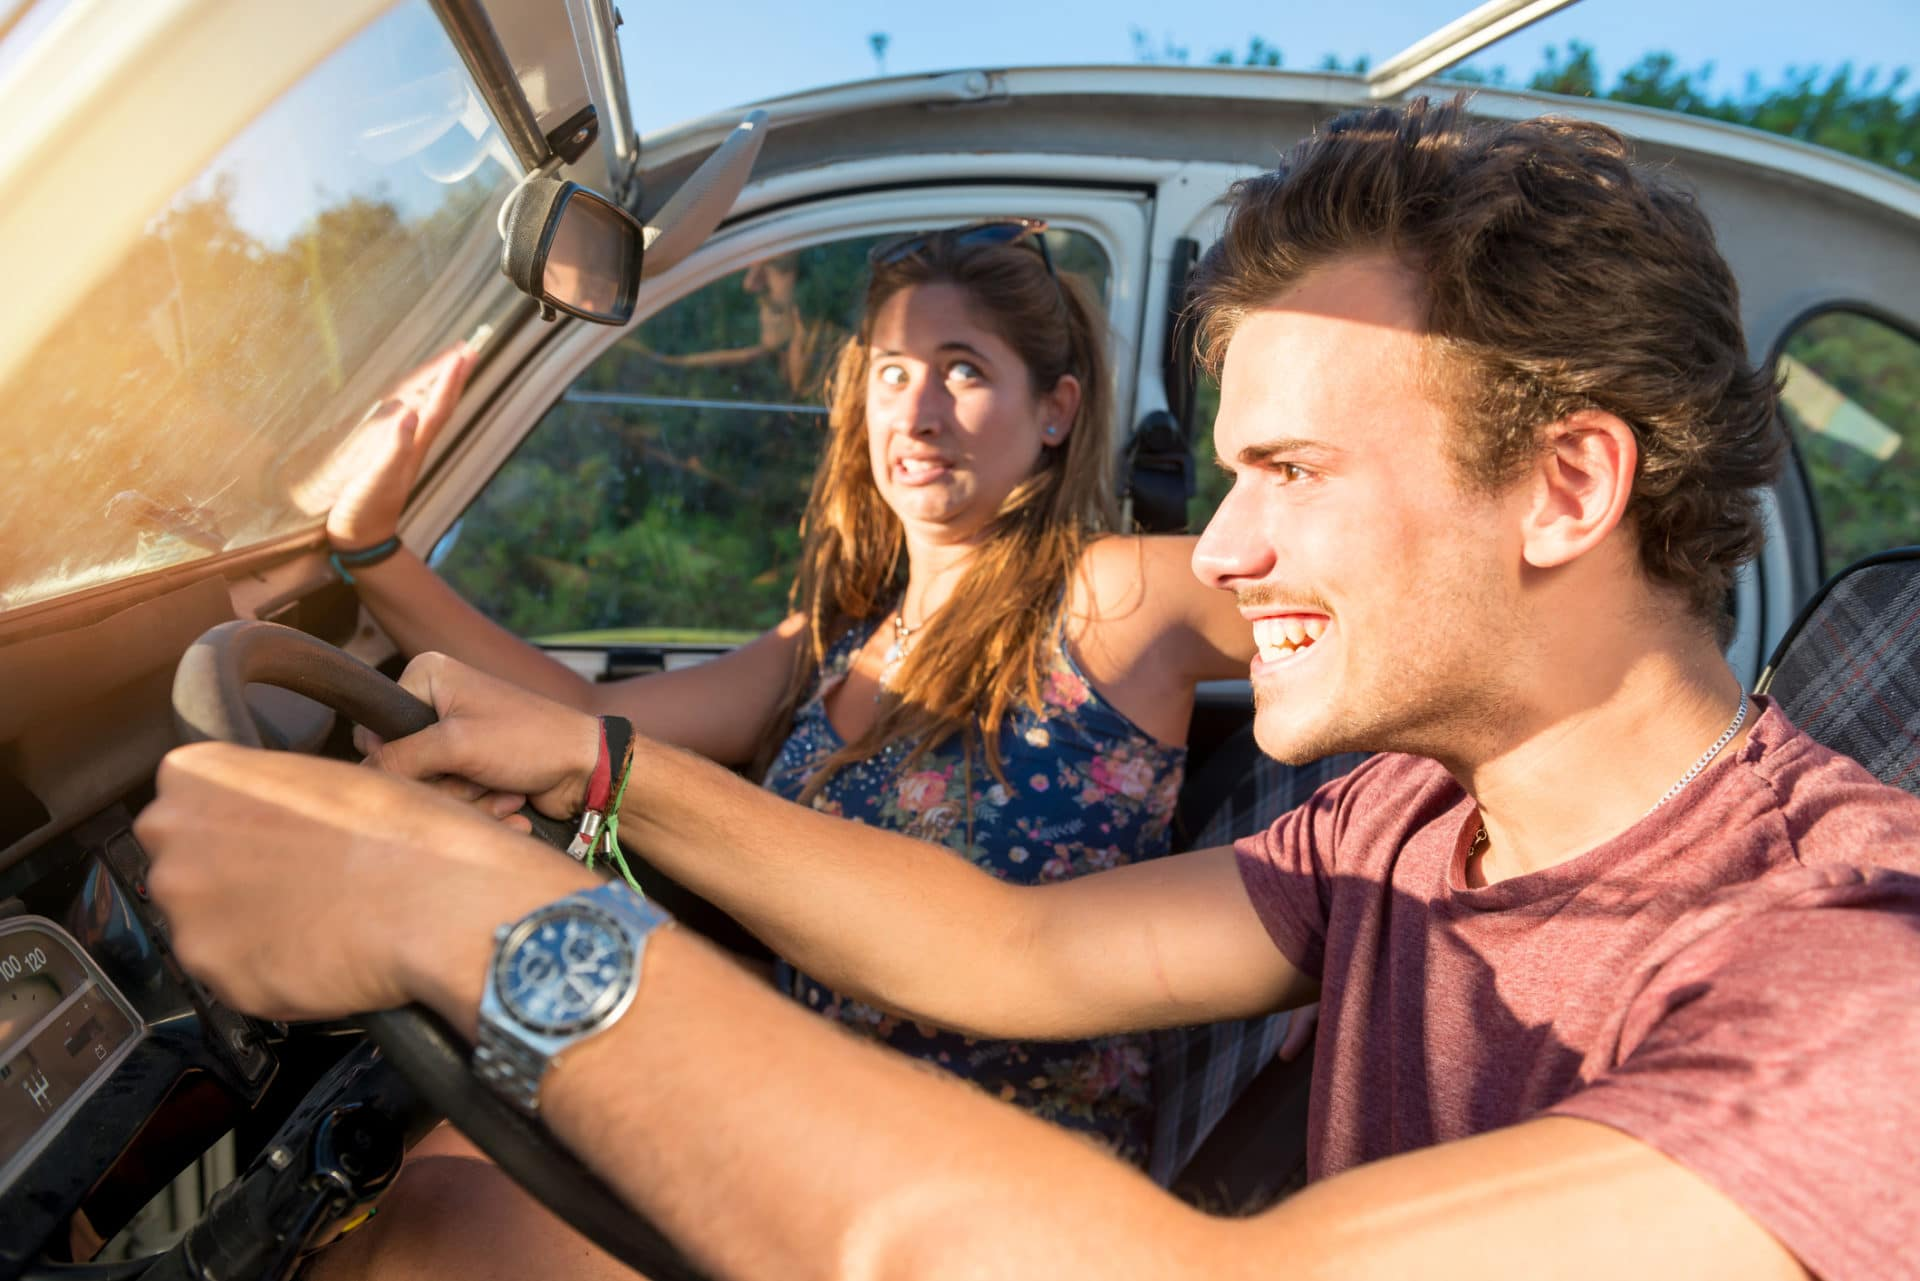 Study says music makes you driver faster